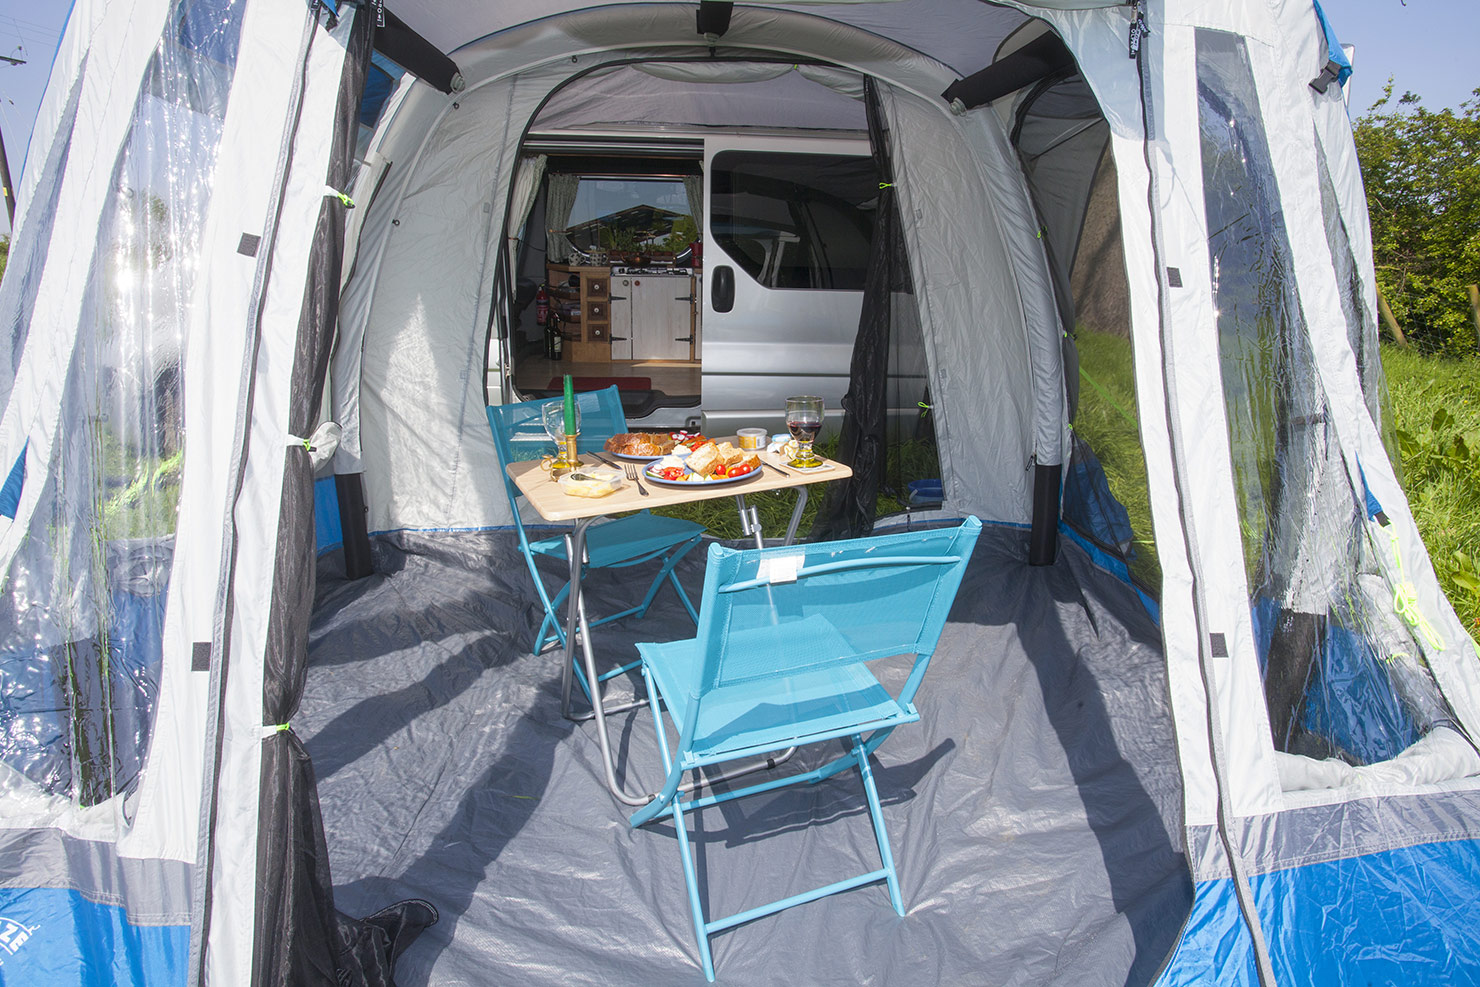 Spacious Awning for relaxing in or sleeping.